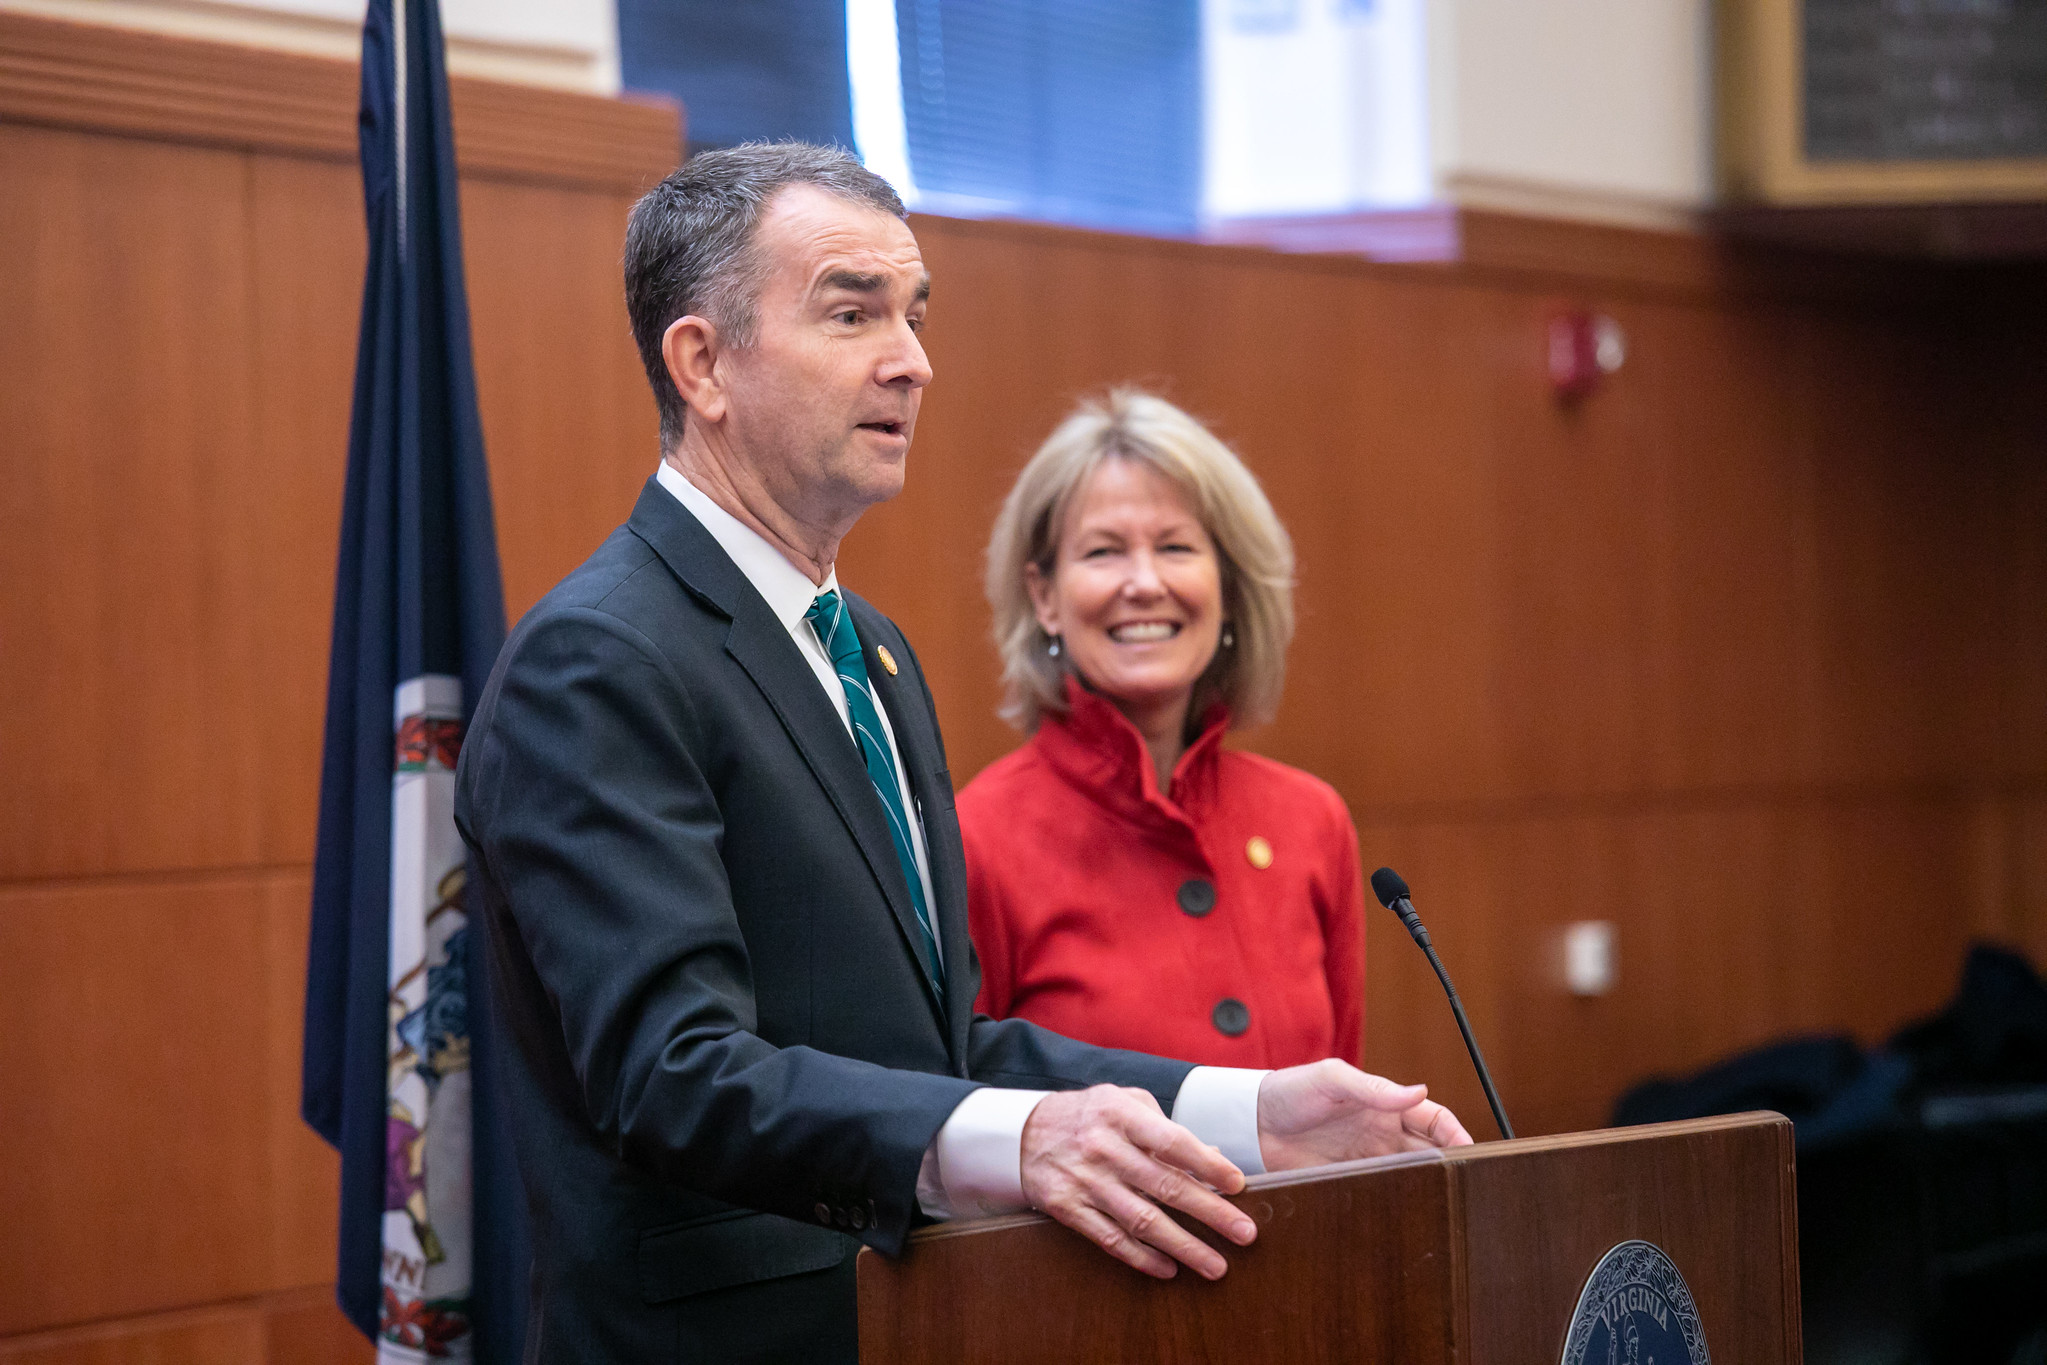 Governor Ralph Northam and legislative leaders today announced support for a comprehensive transportation package that will improve driver and pedestrian safety and modernize funding for transit, rail, and roads.